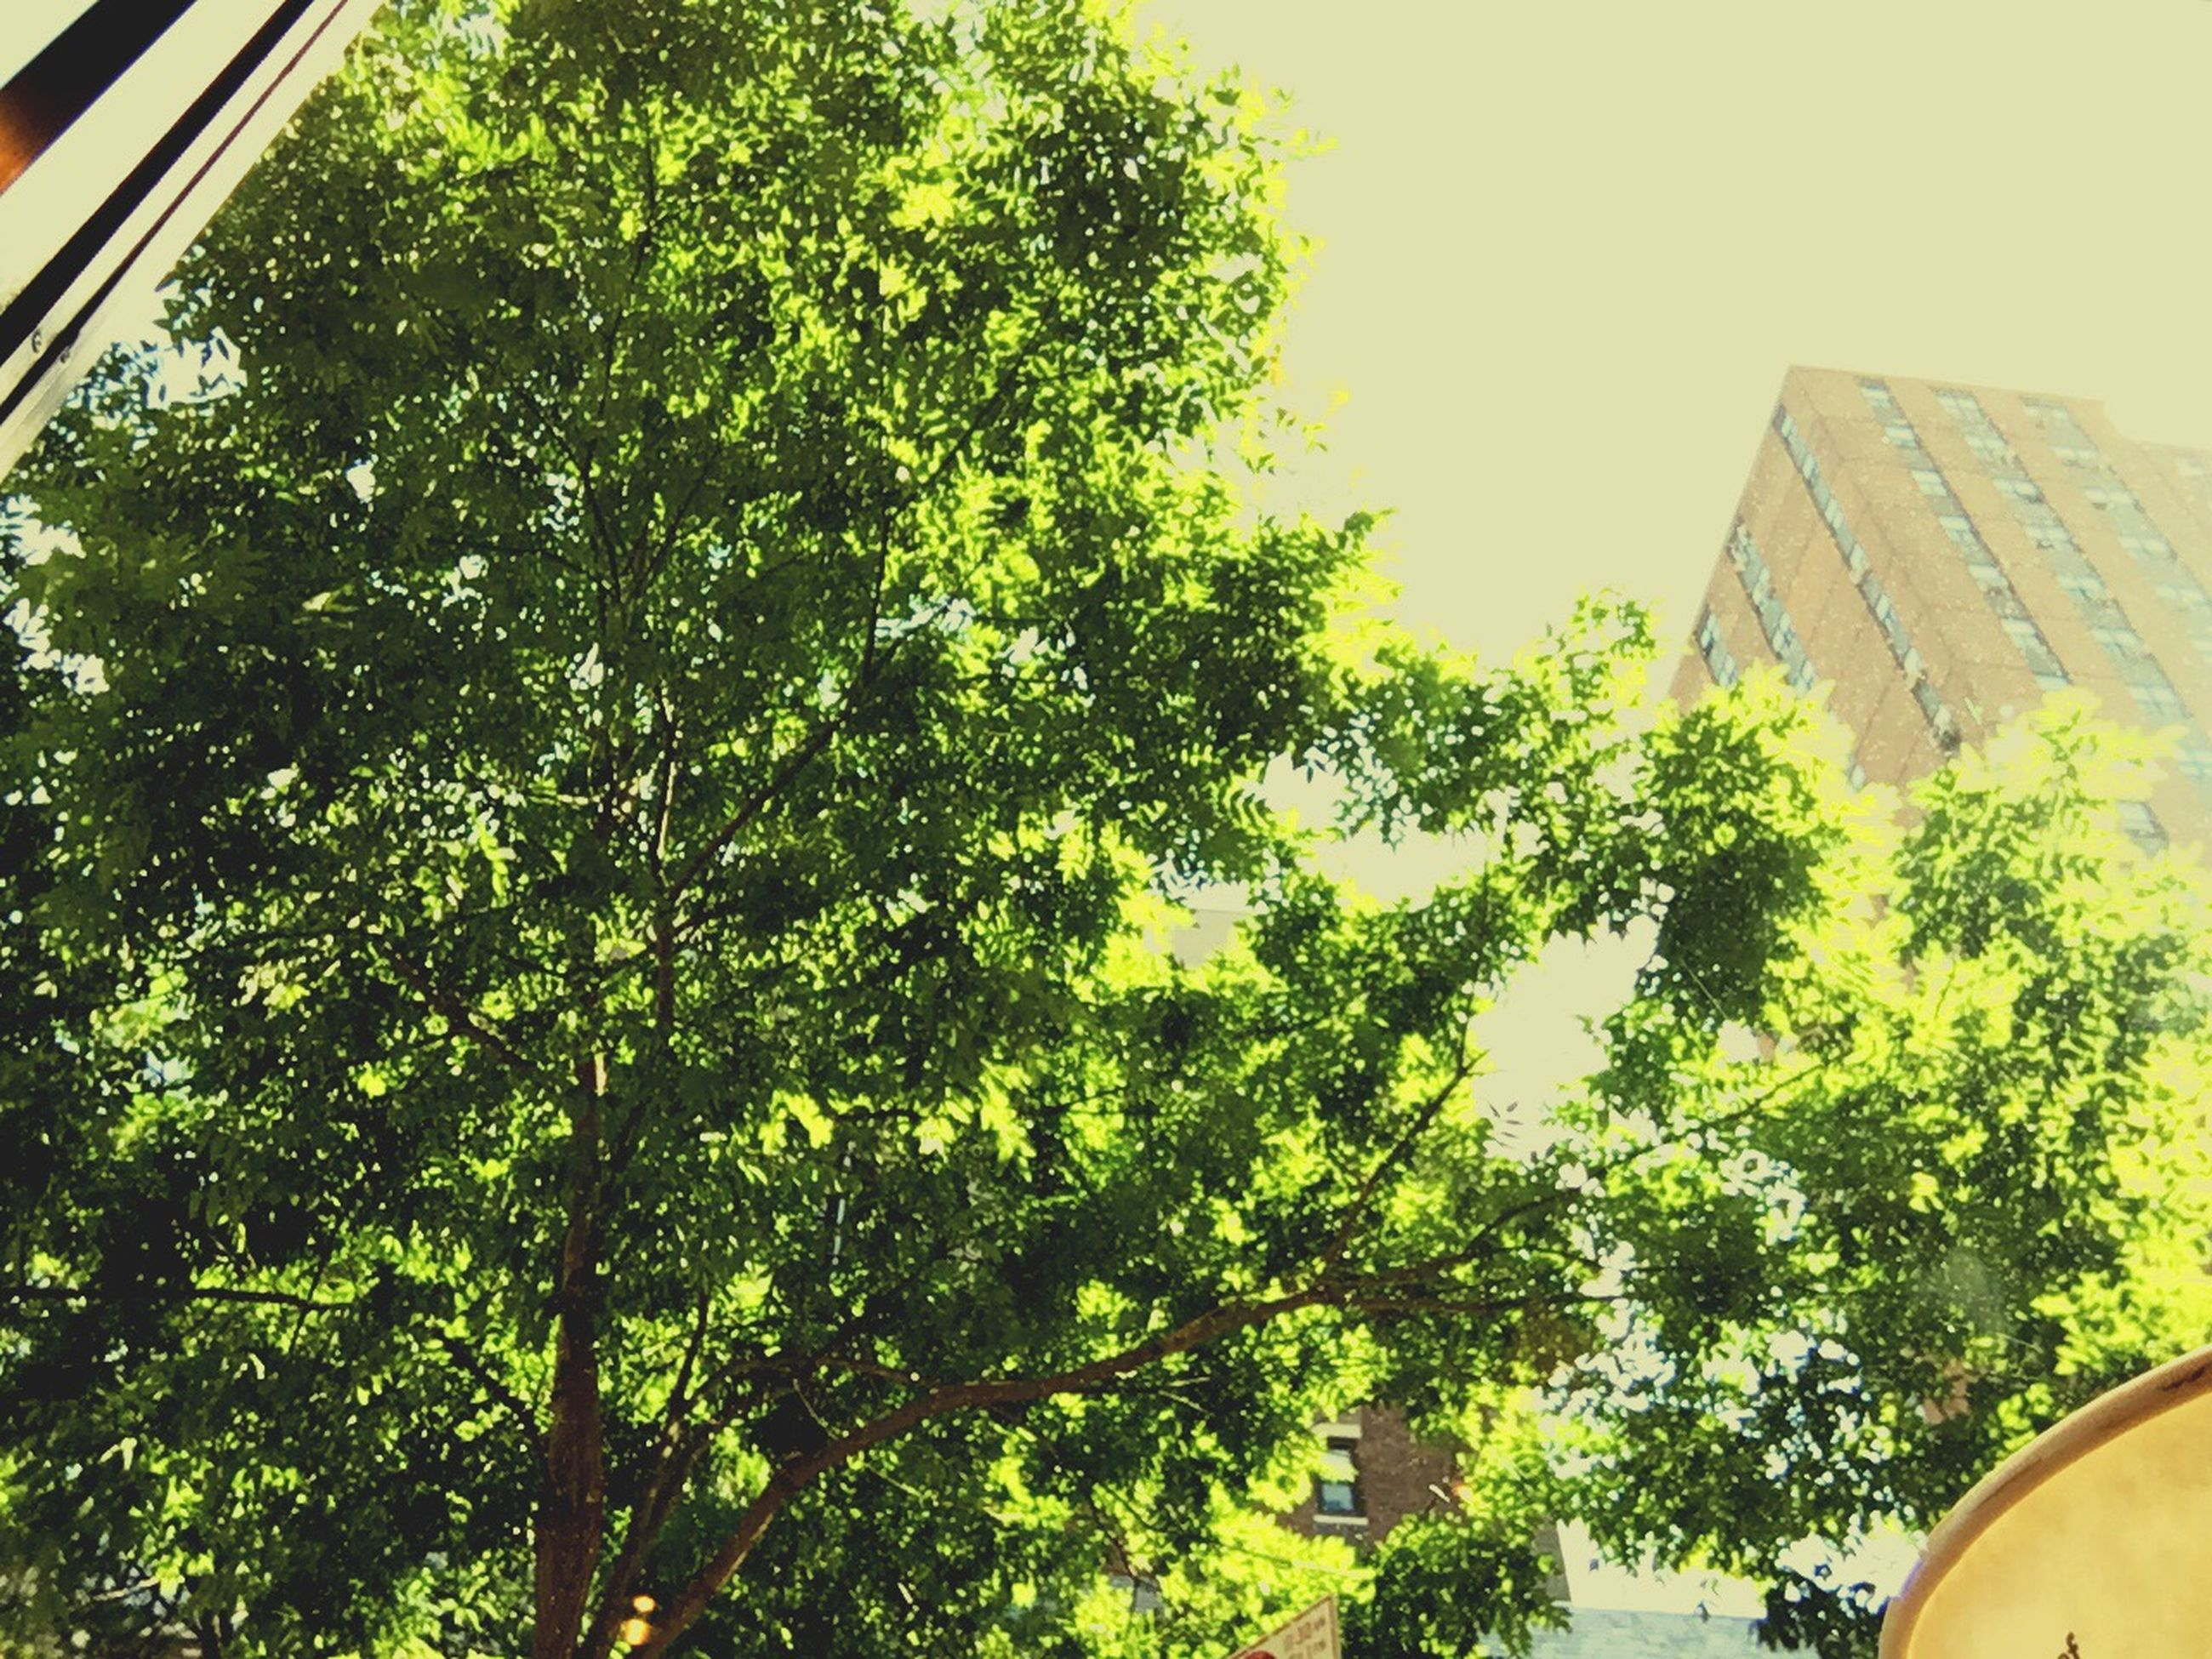 architecture, building exterior, built structure, tree, low angle view, growth, building, green color, clear sky, house, day, residential building, residential structure, window, outdoors, no people, branch, plant, leaf, sunlight